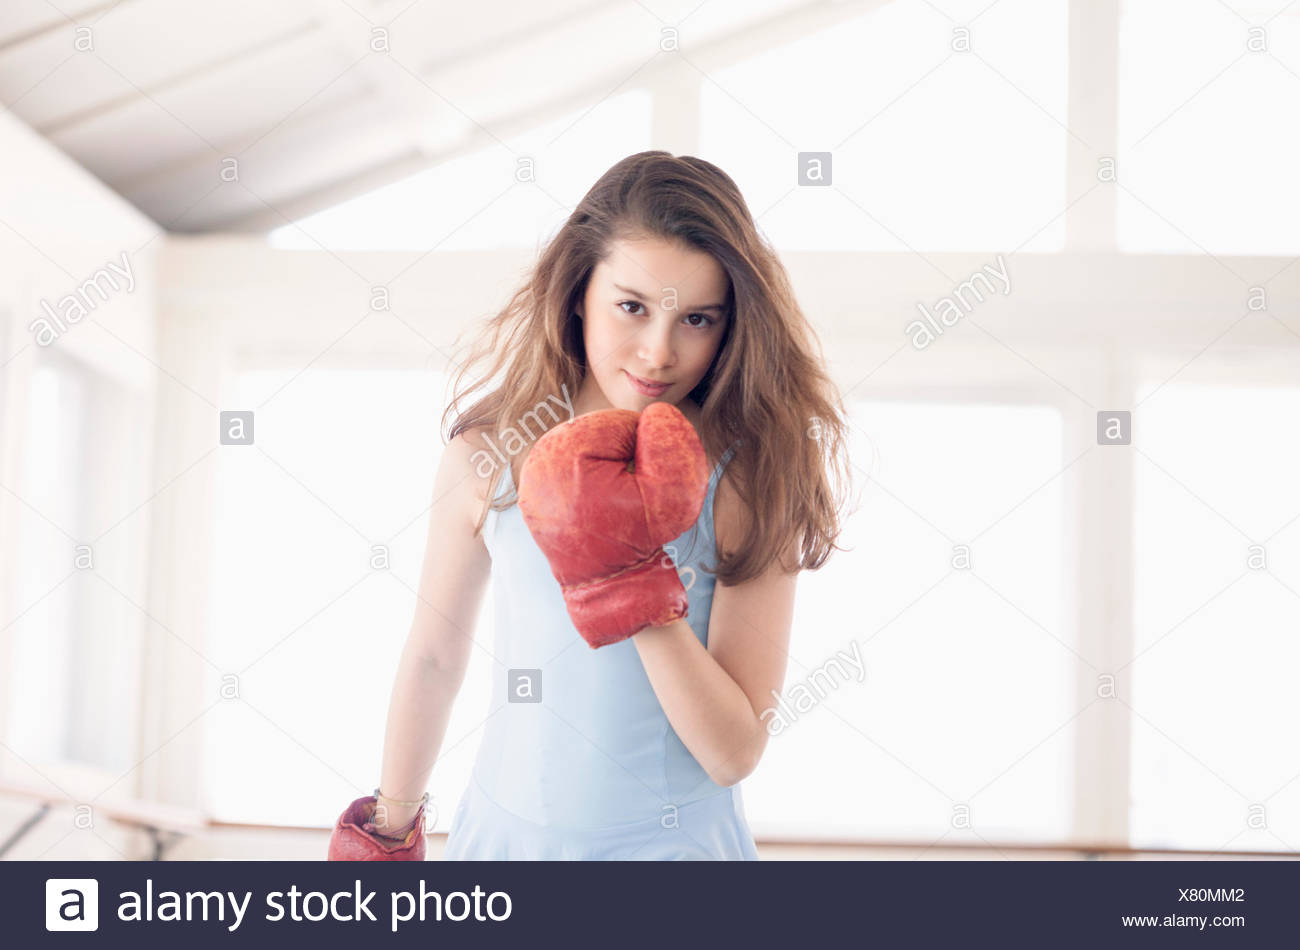 Girl with boxing glove - Stock Image